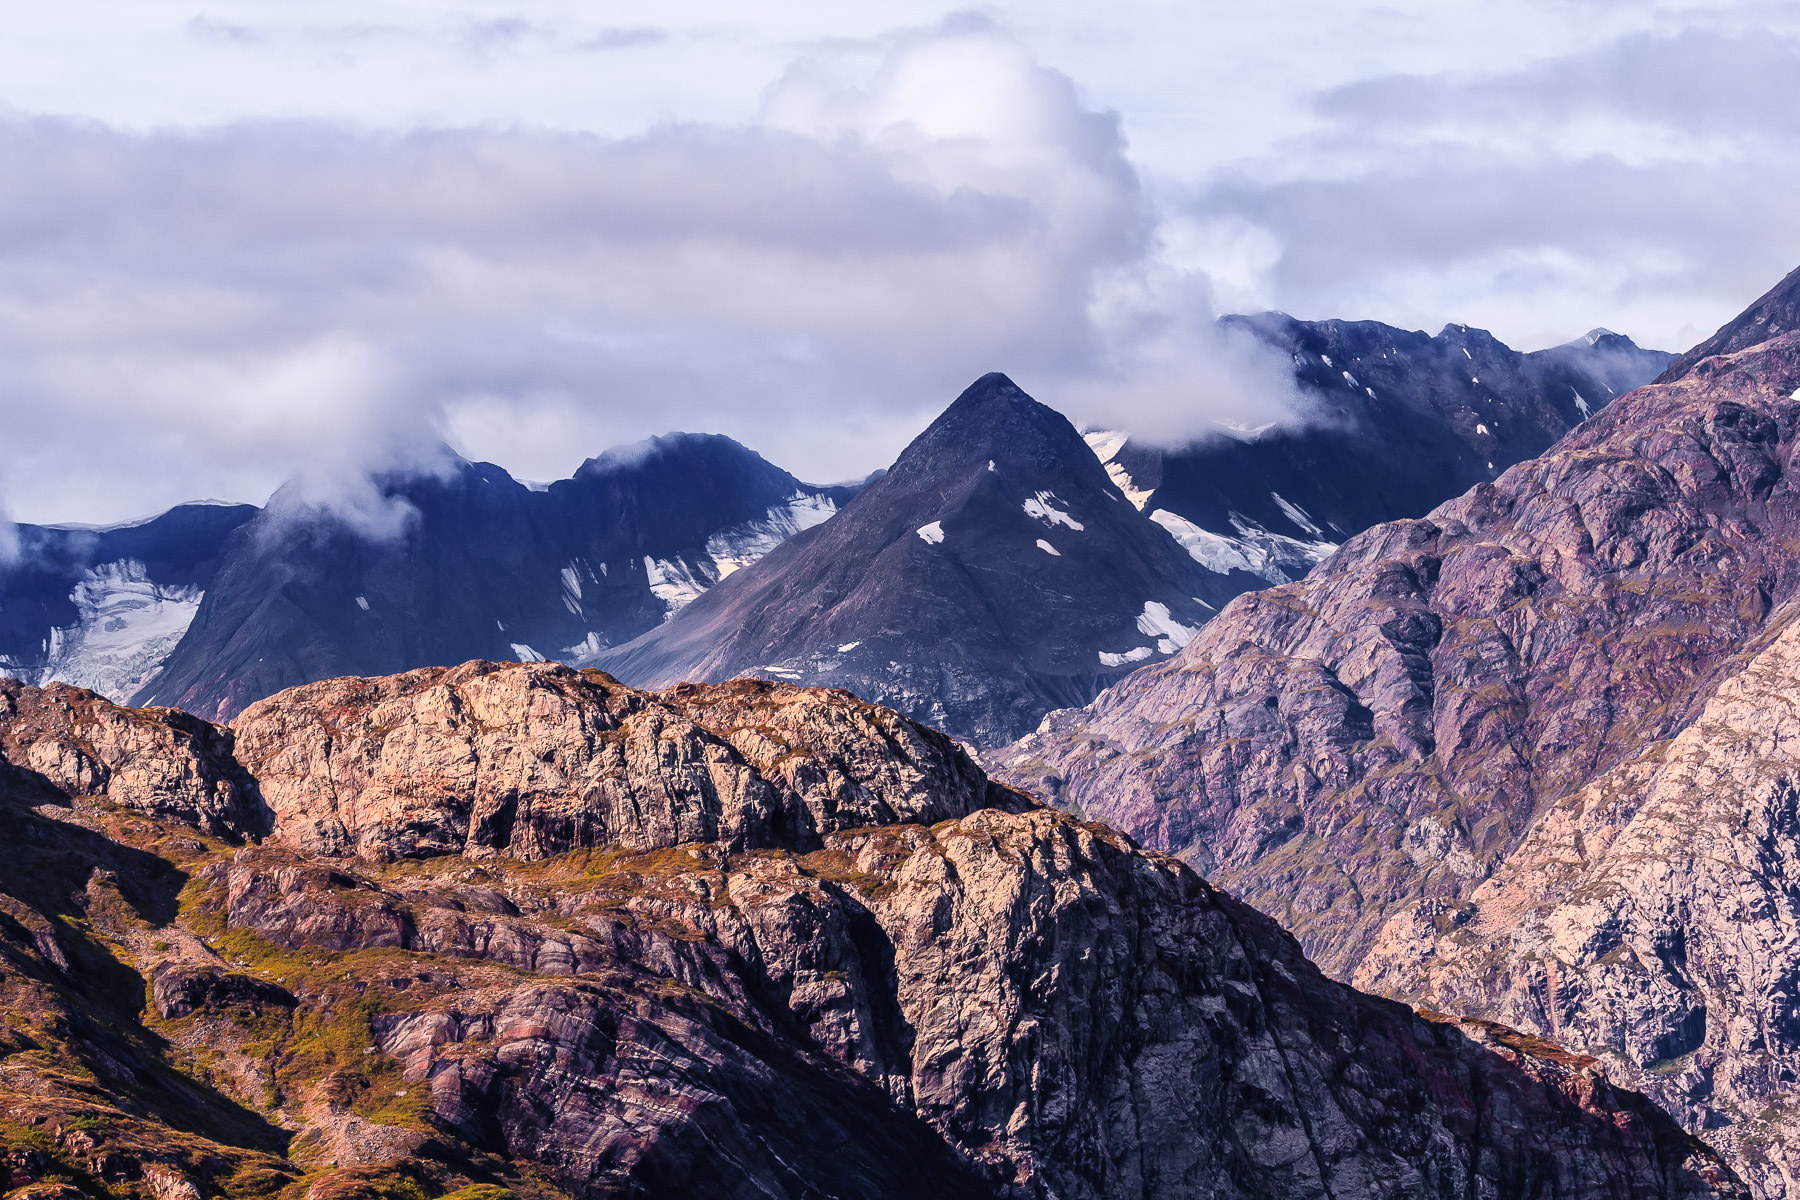 Rugged mountains rise into the clouds near Alaska's Glacier Bay National Park.